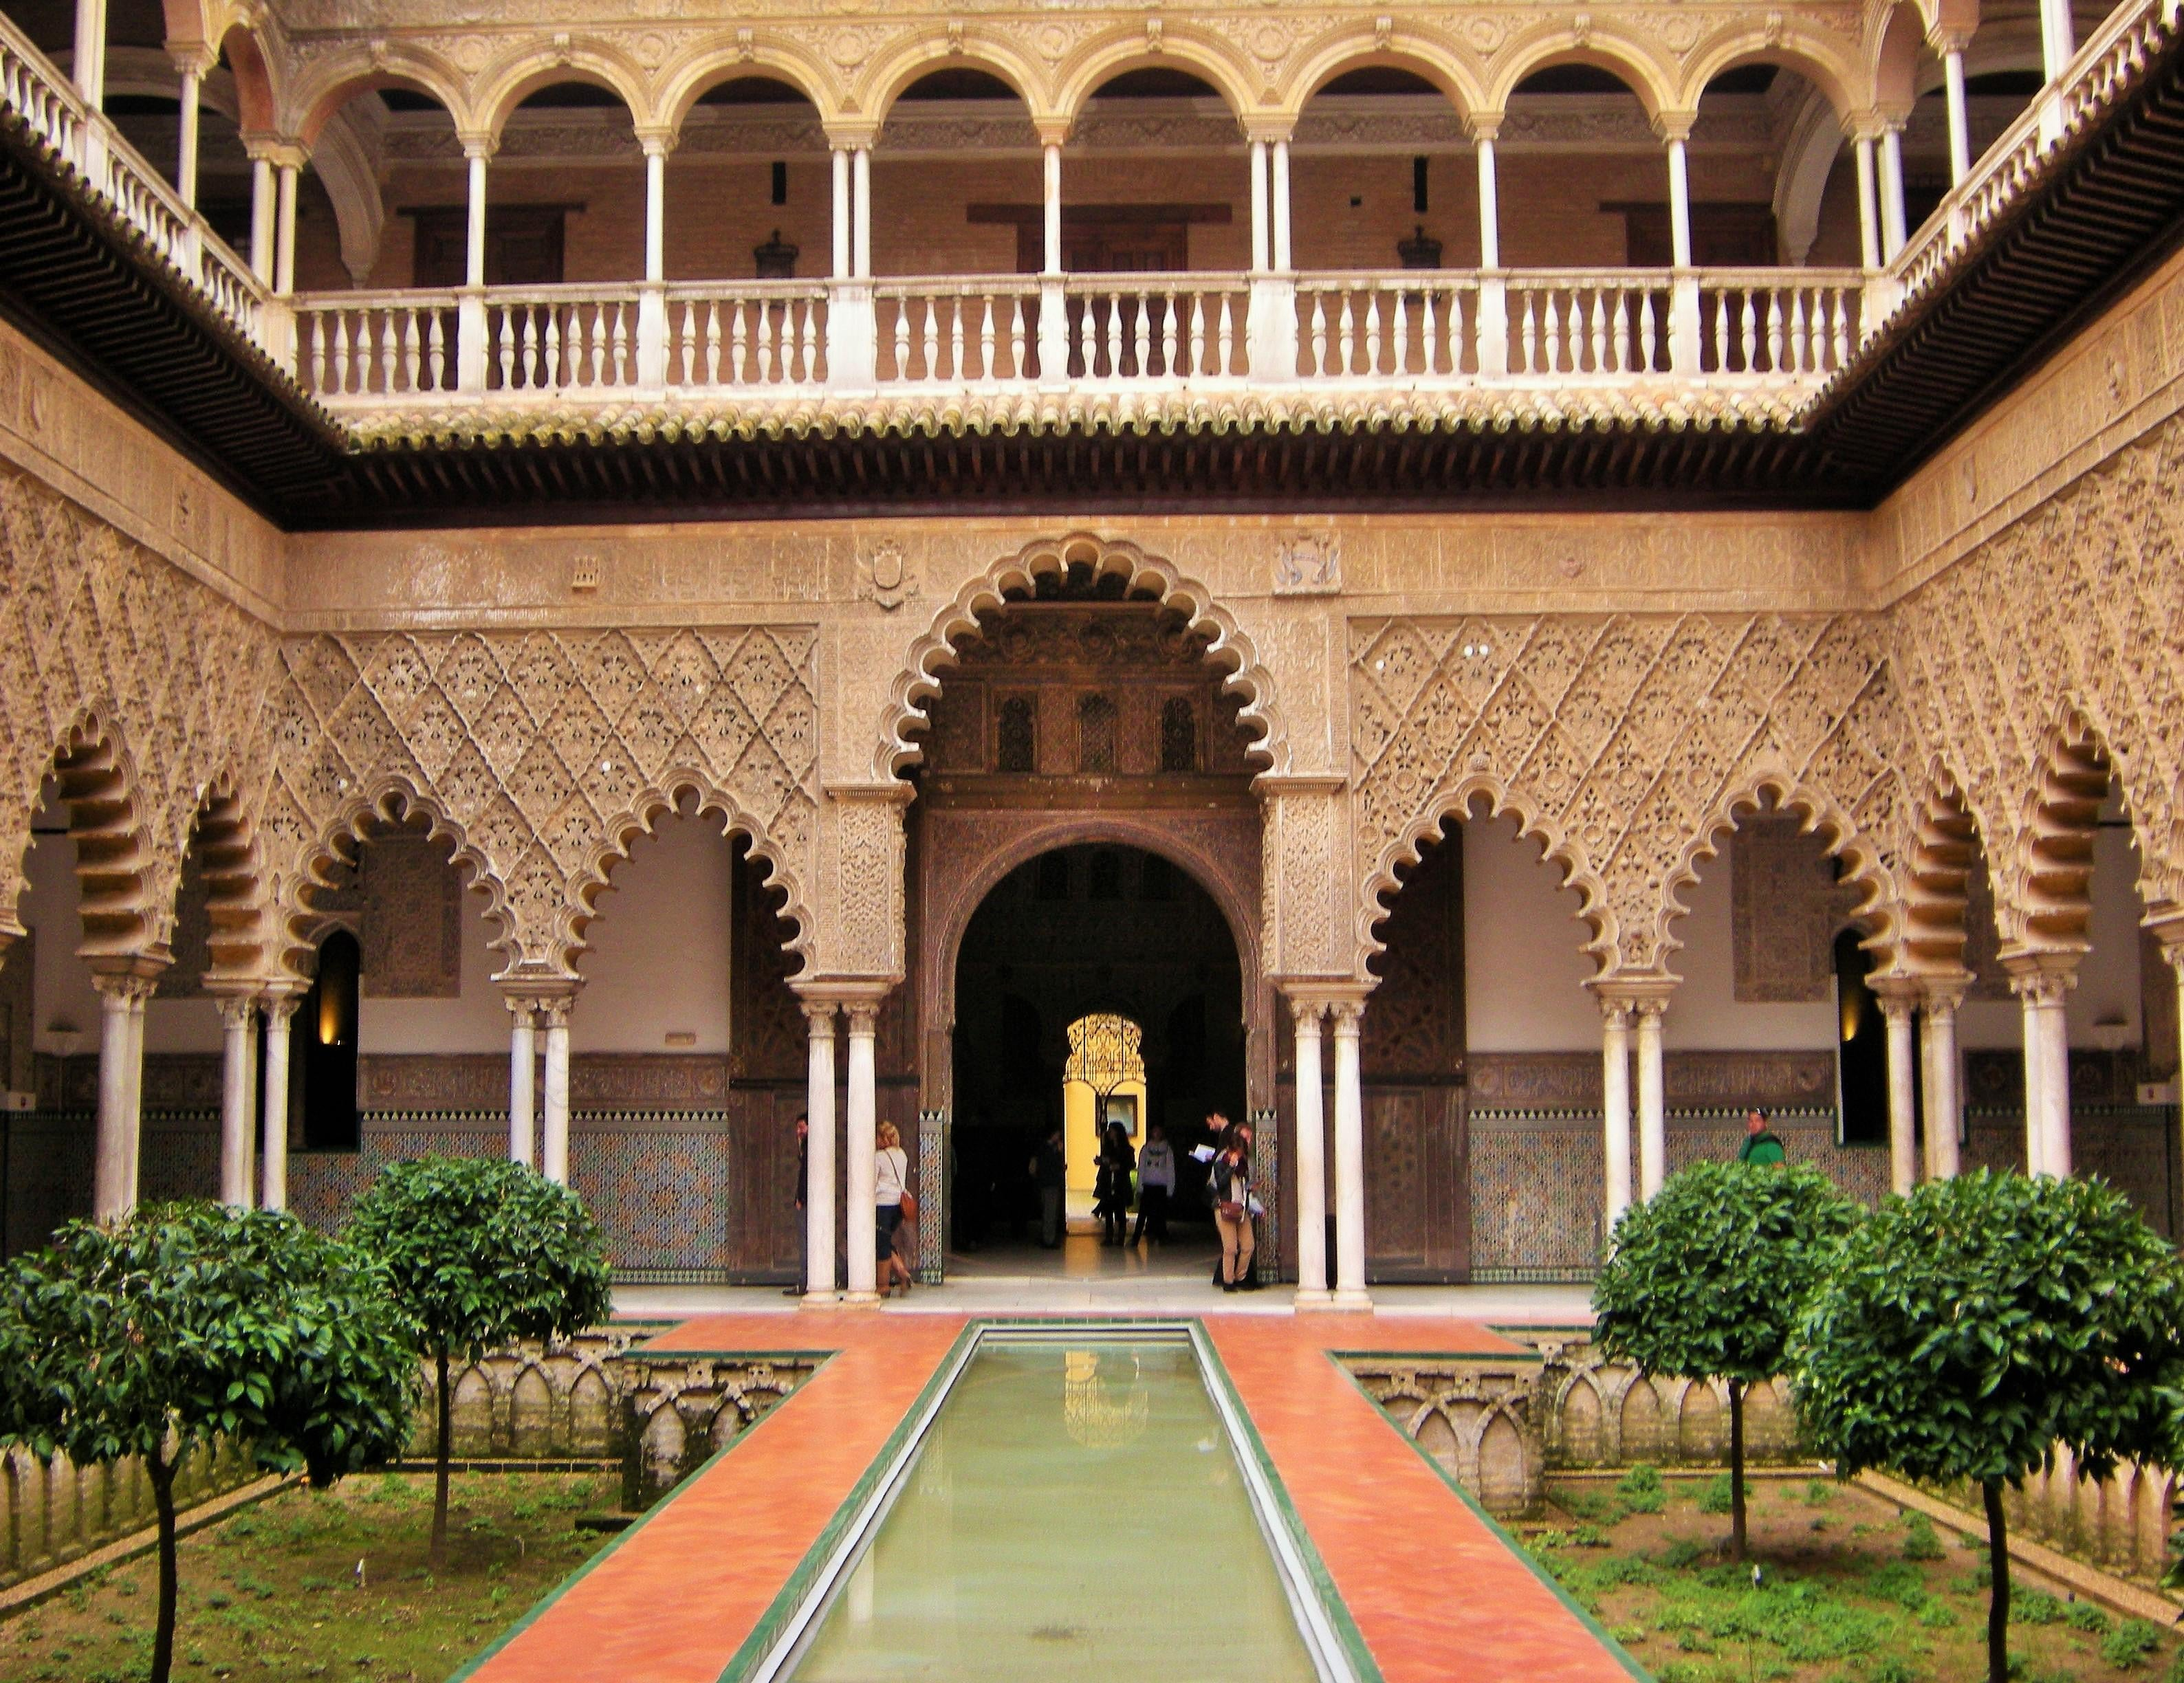 Patio en Real Alcázar